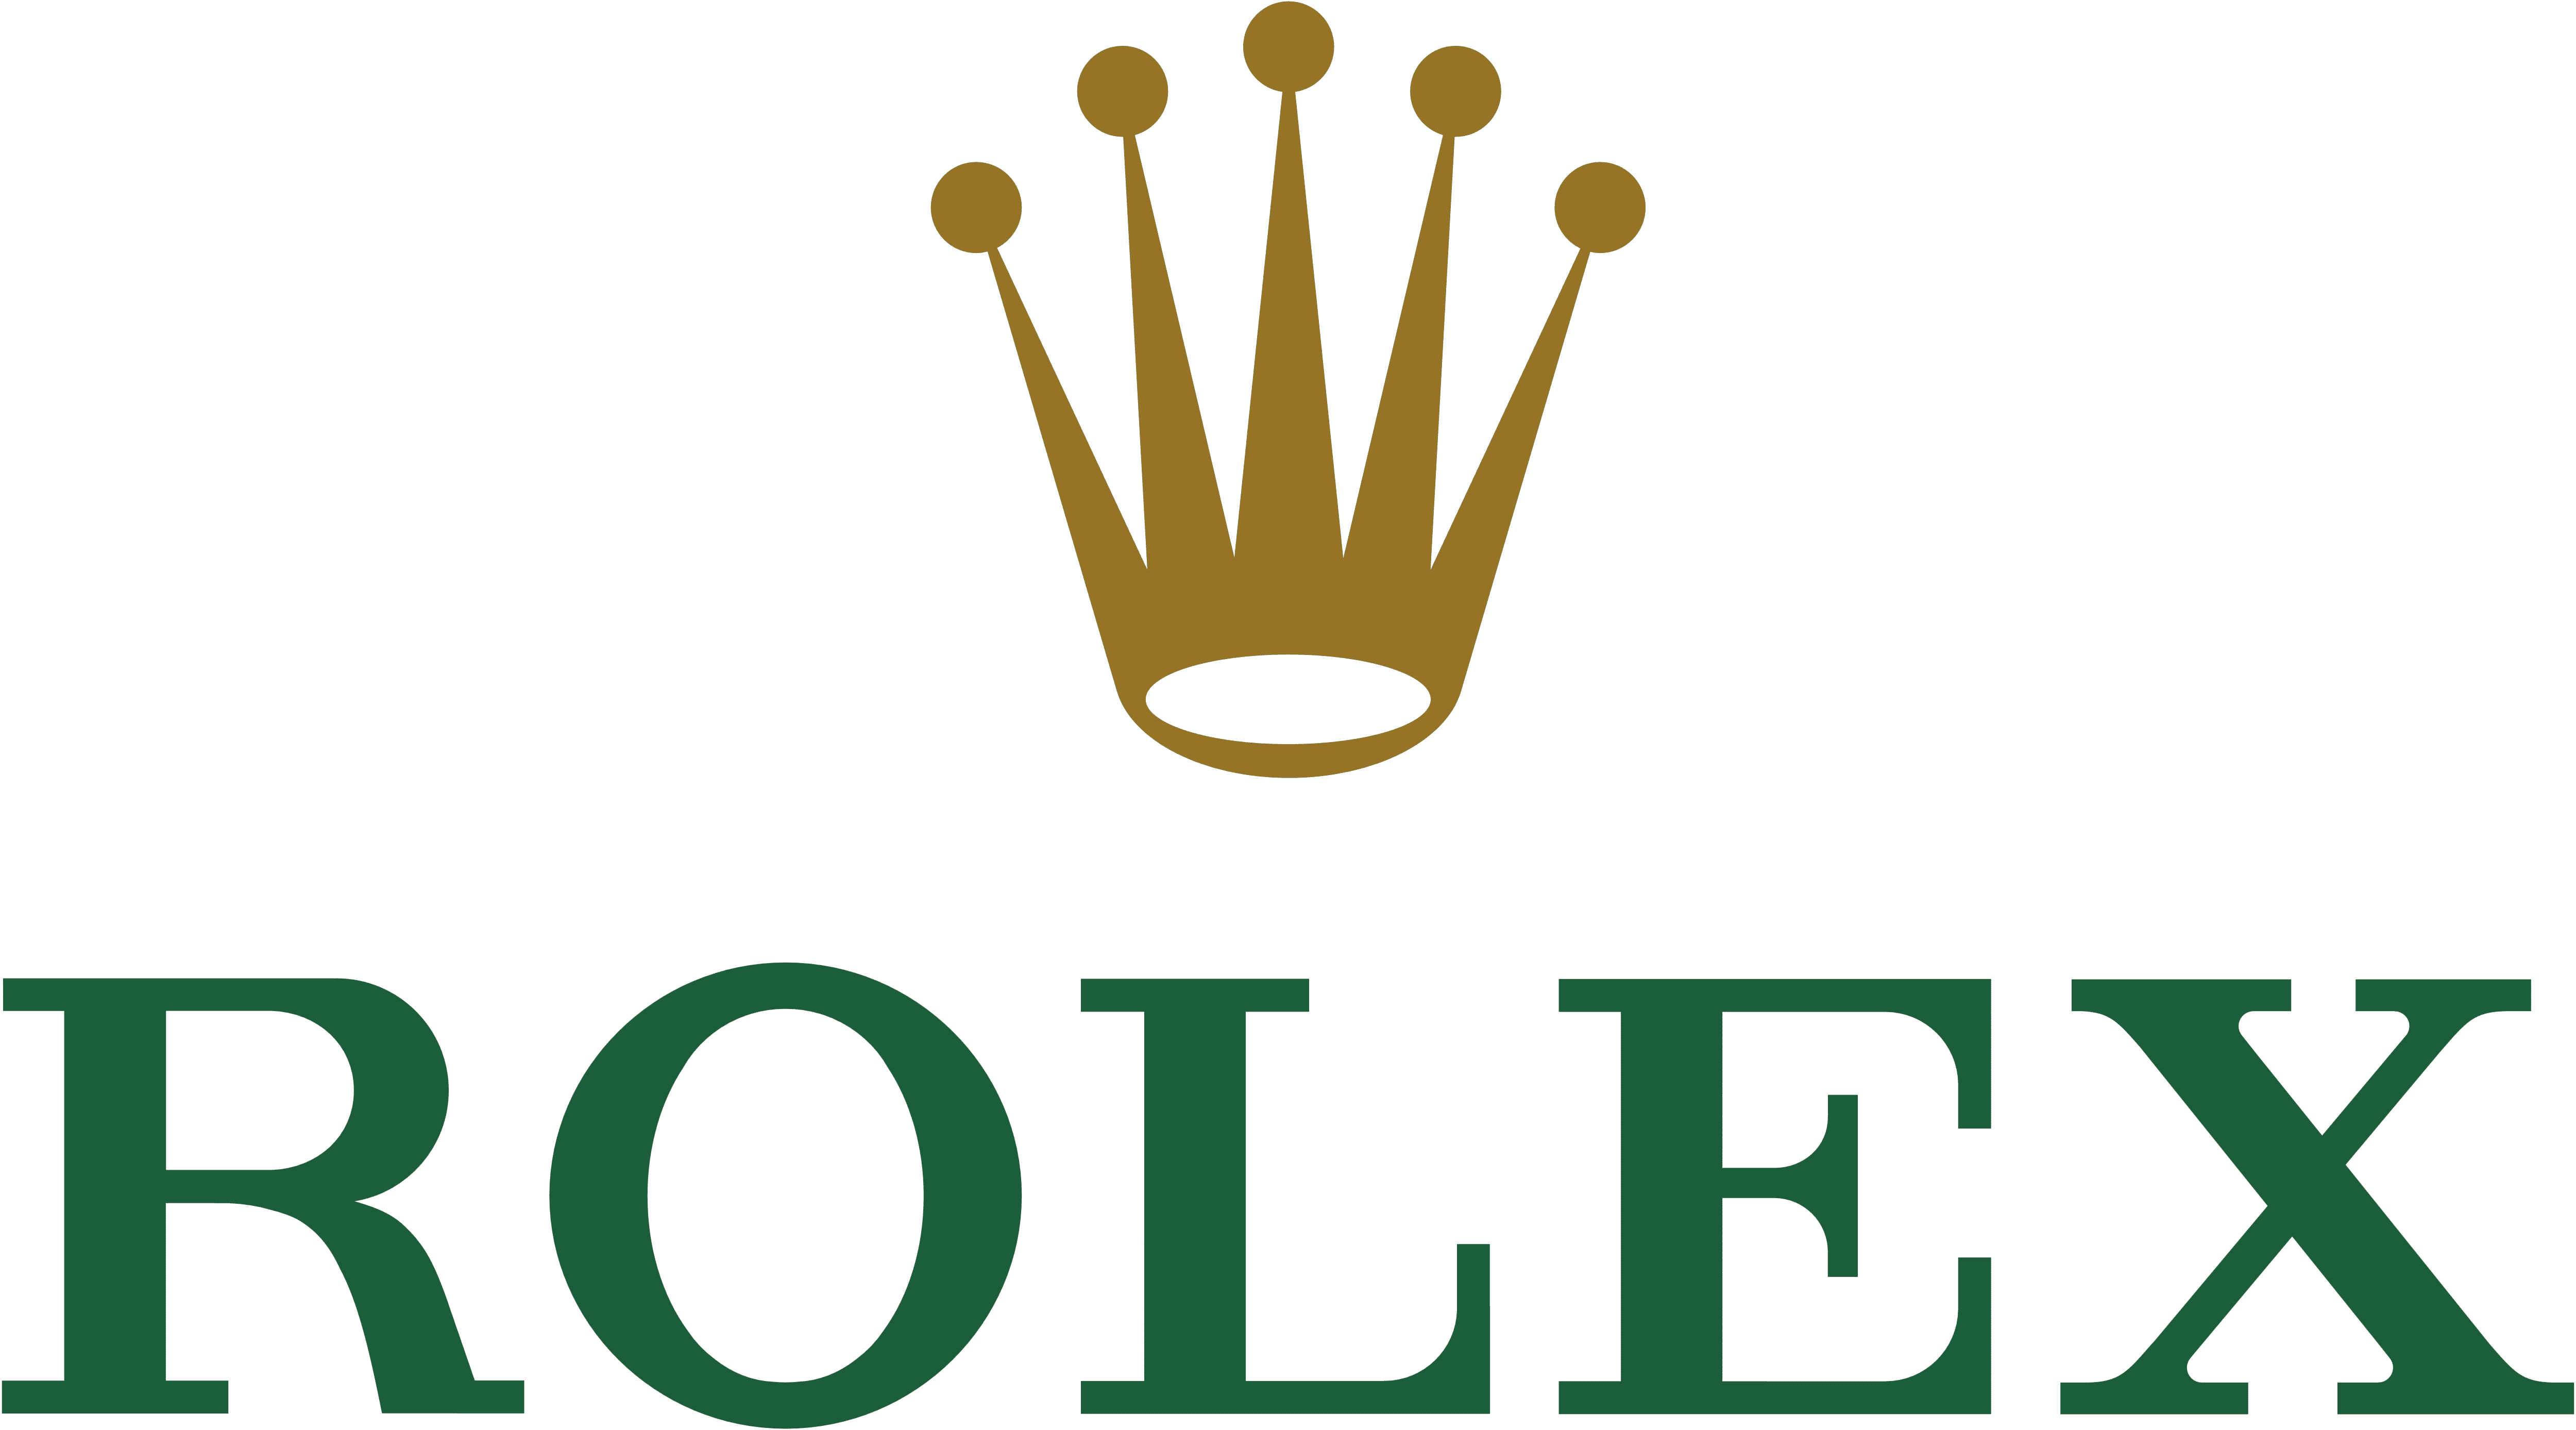 Rolex Logo, Rolex Symbol, Meaning, History and Evolution